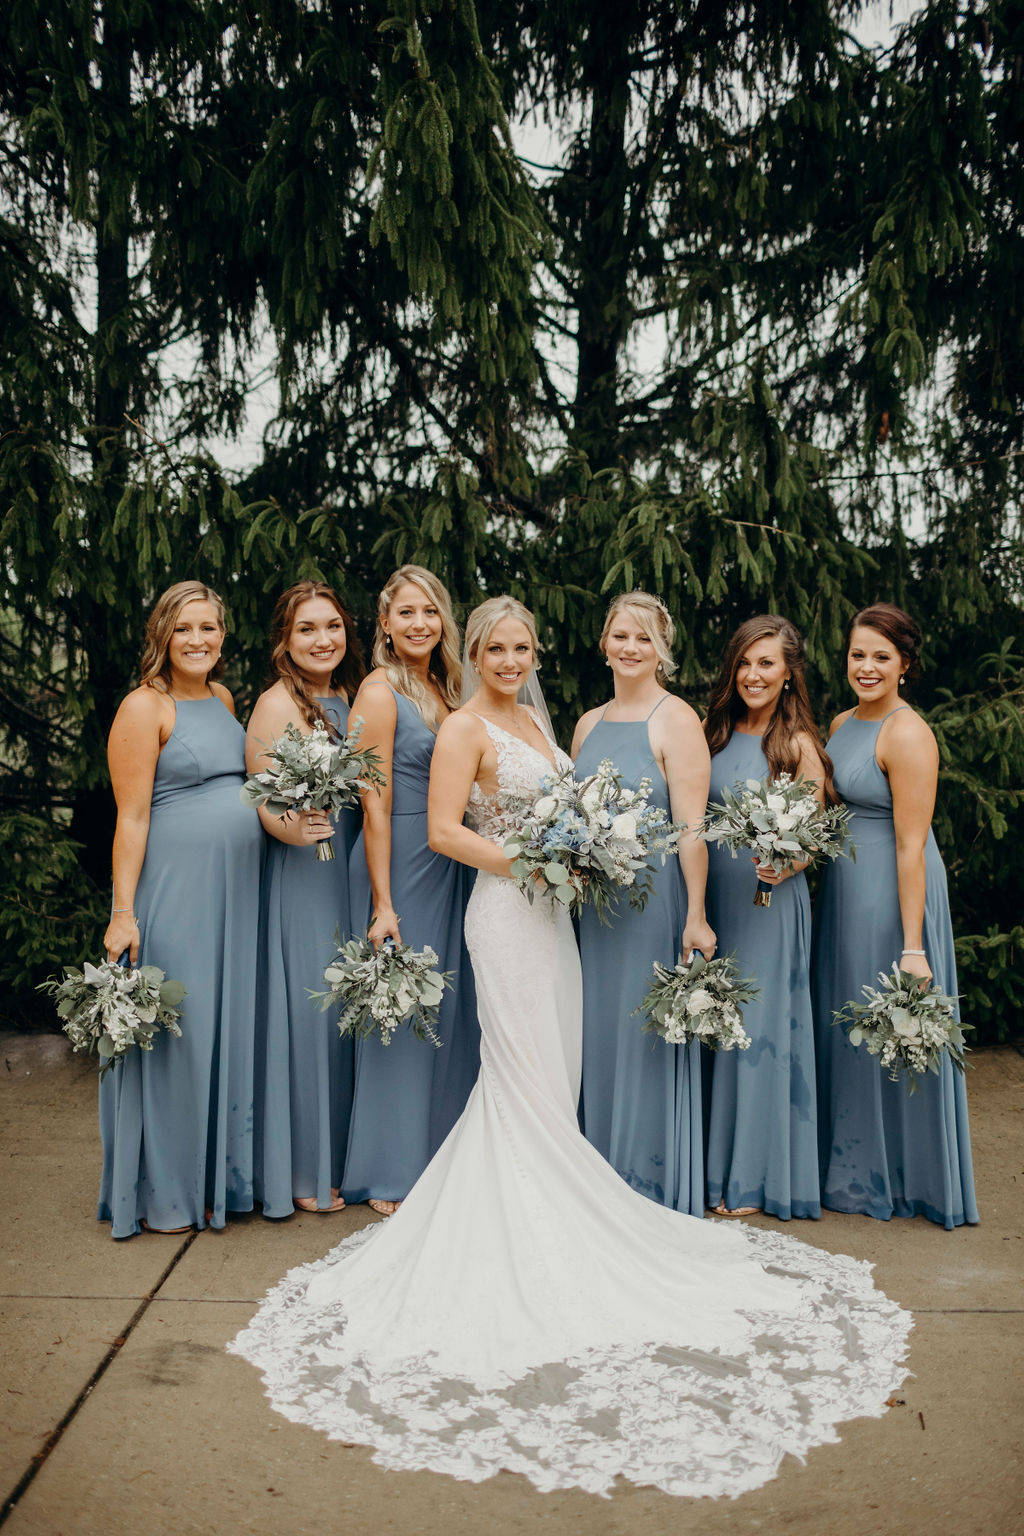 Bride standing with bridesmaids smiling